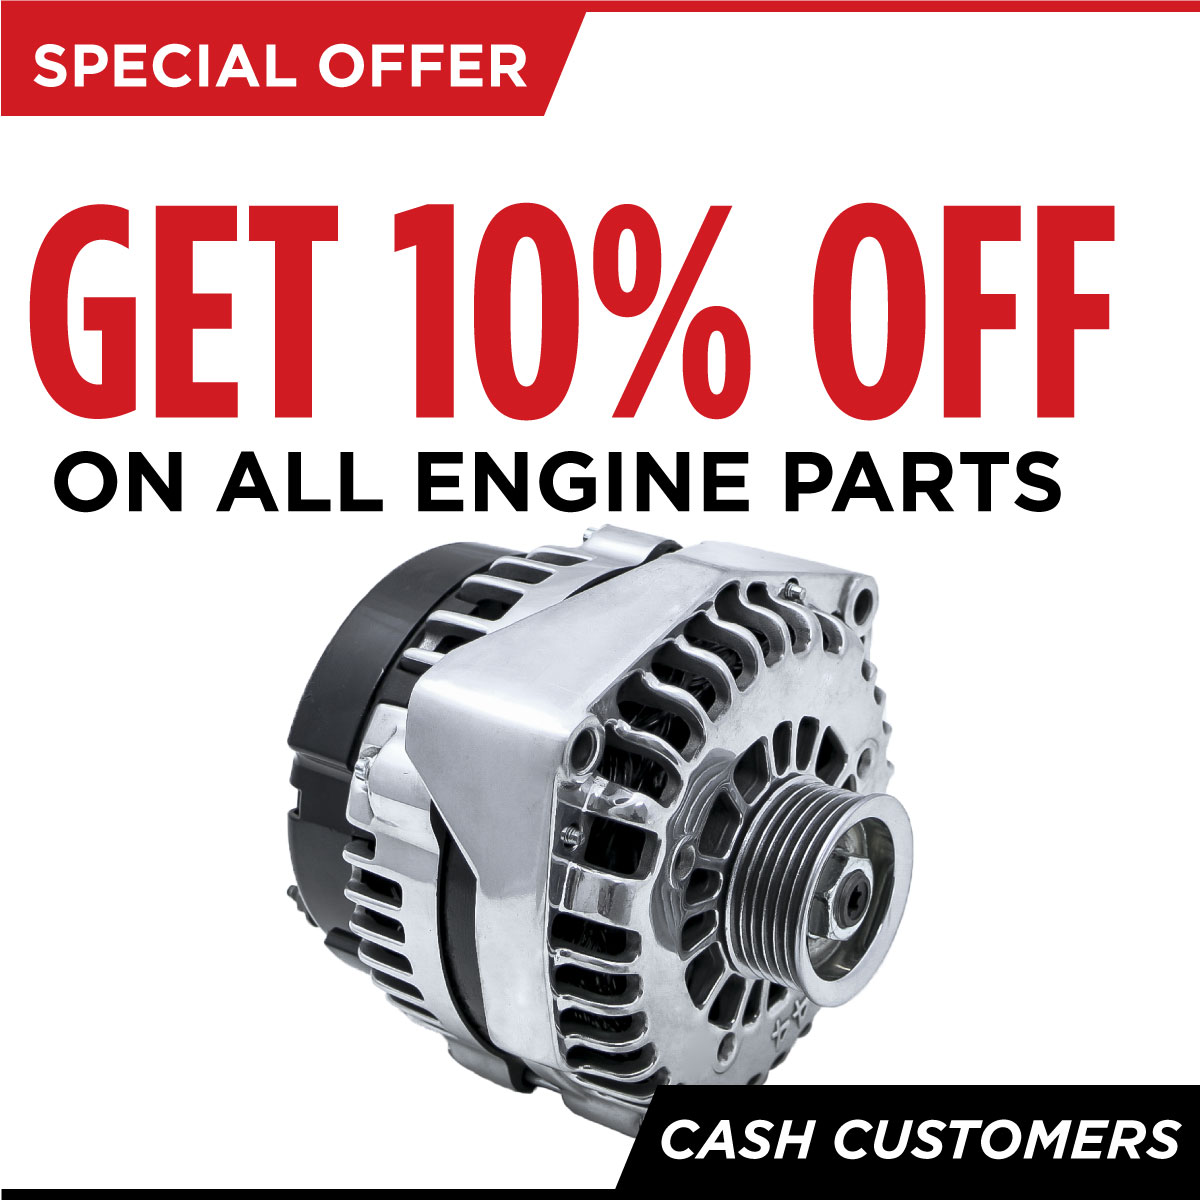 10% off all engine parts